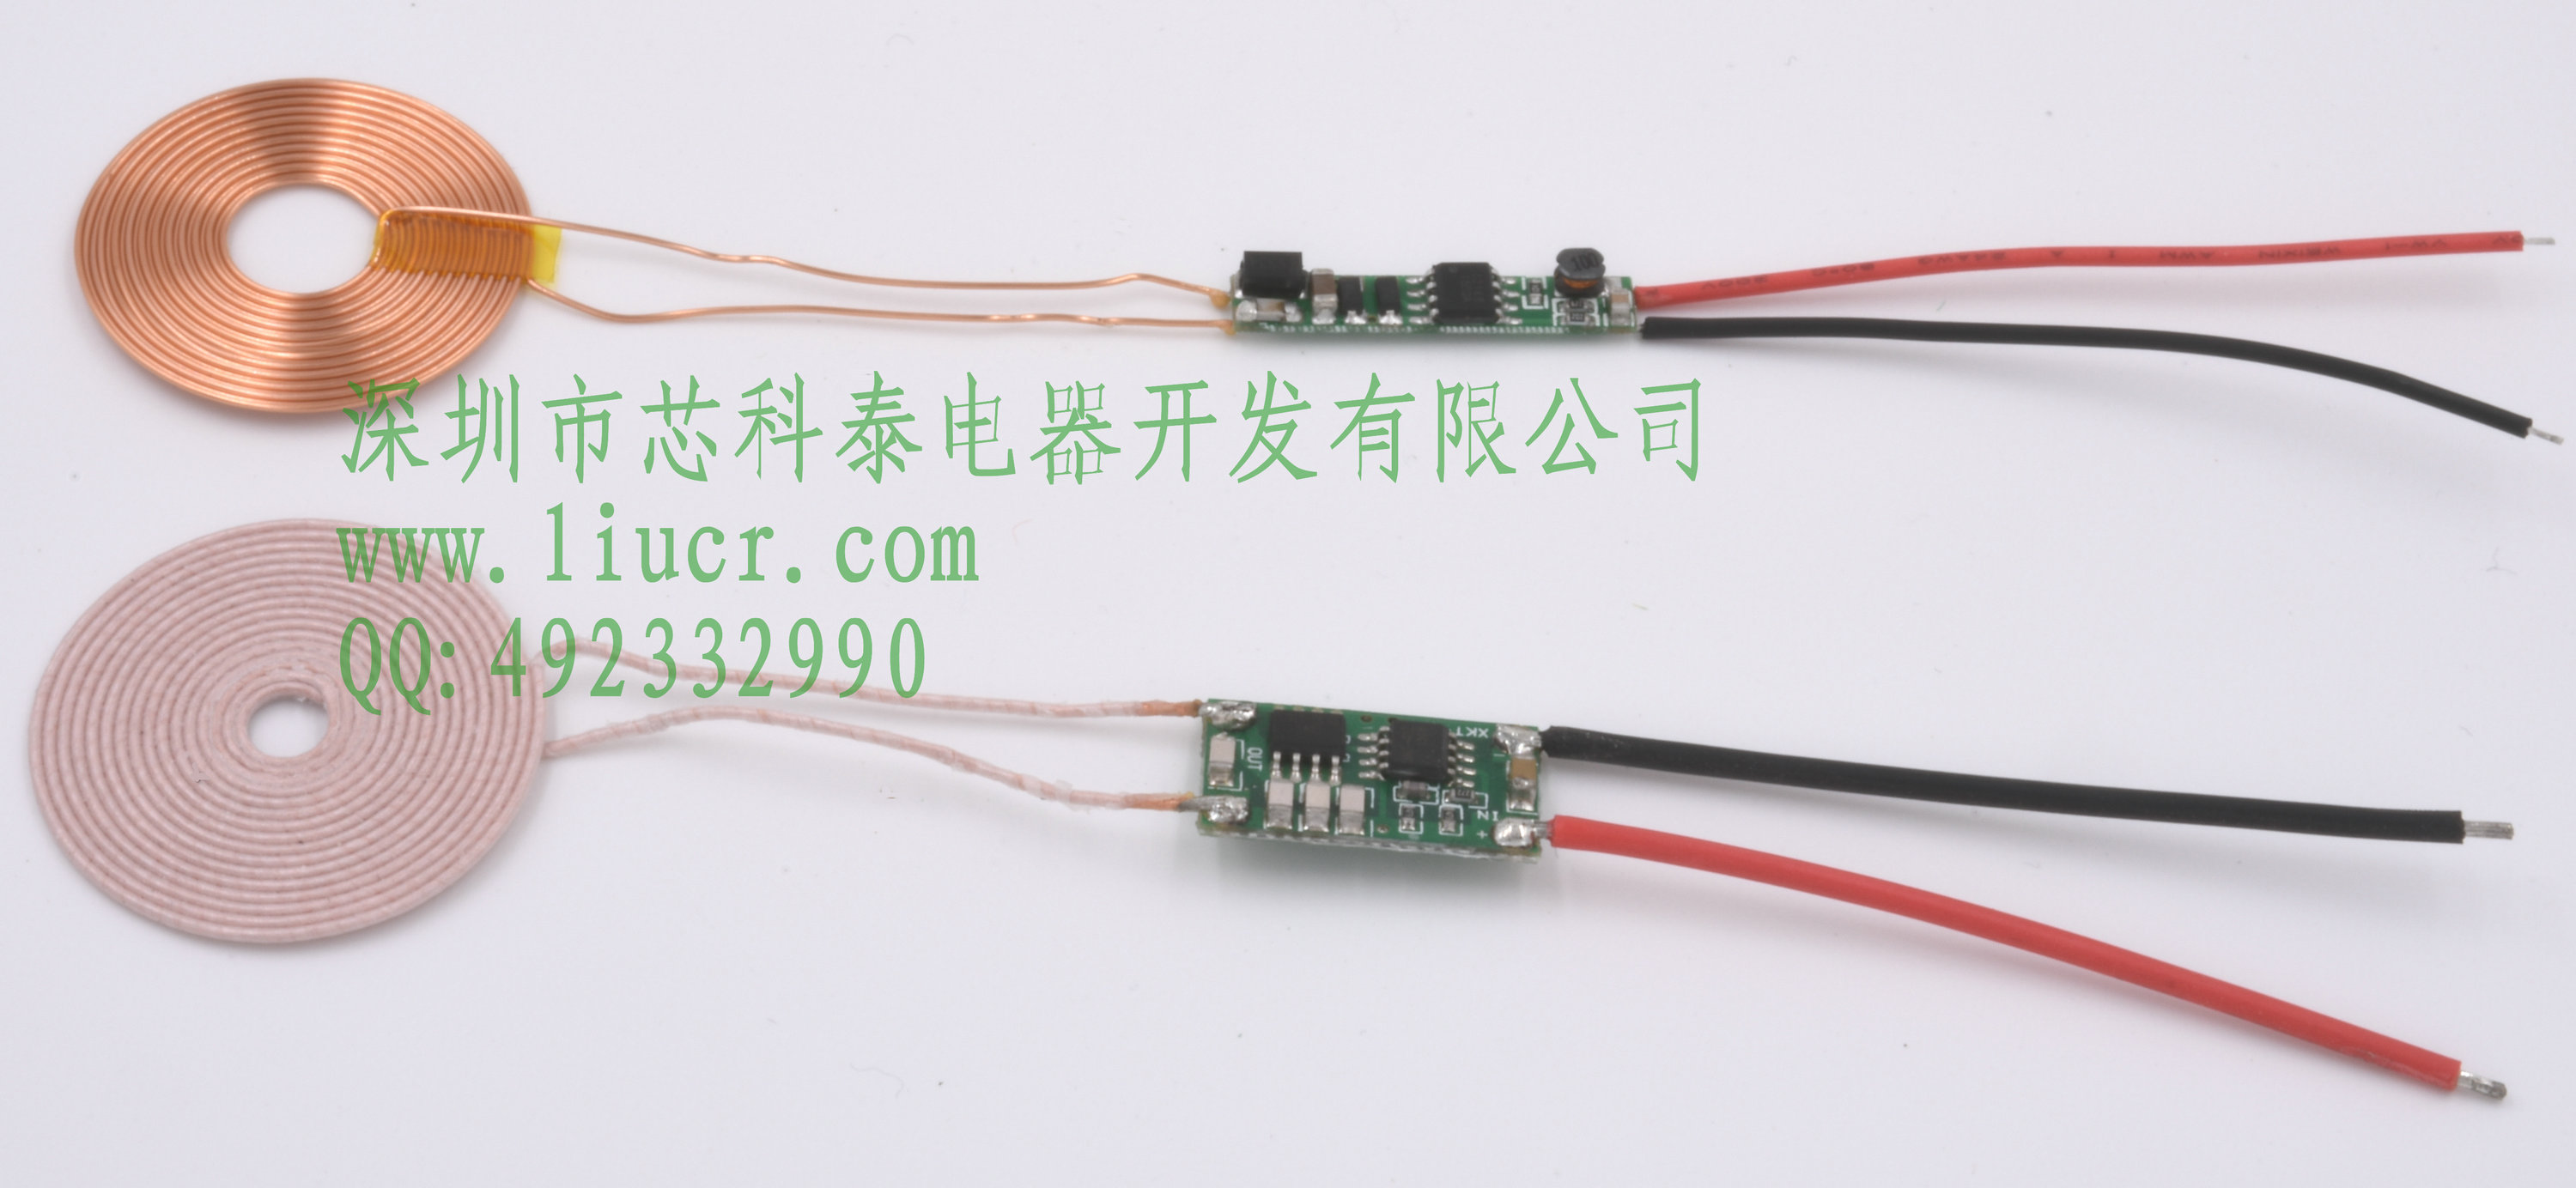 medium resolution of 5v500ma usb large current wireless power supply module xkt412 chip circuit diagram